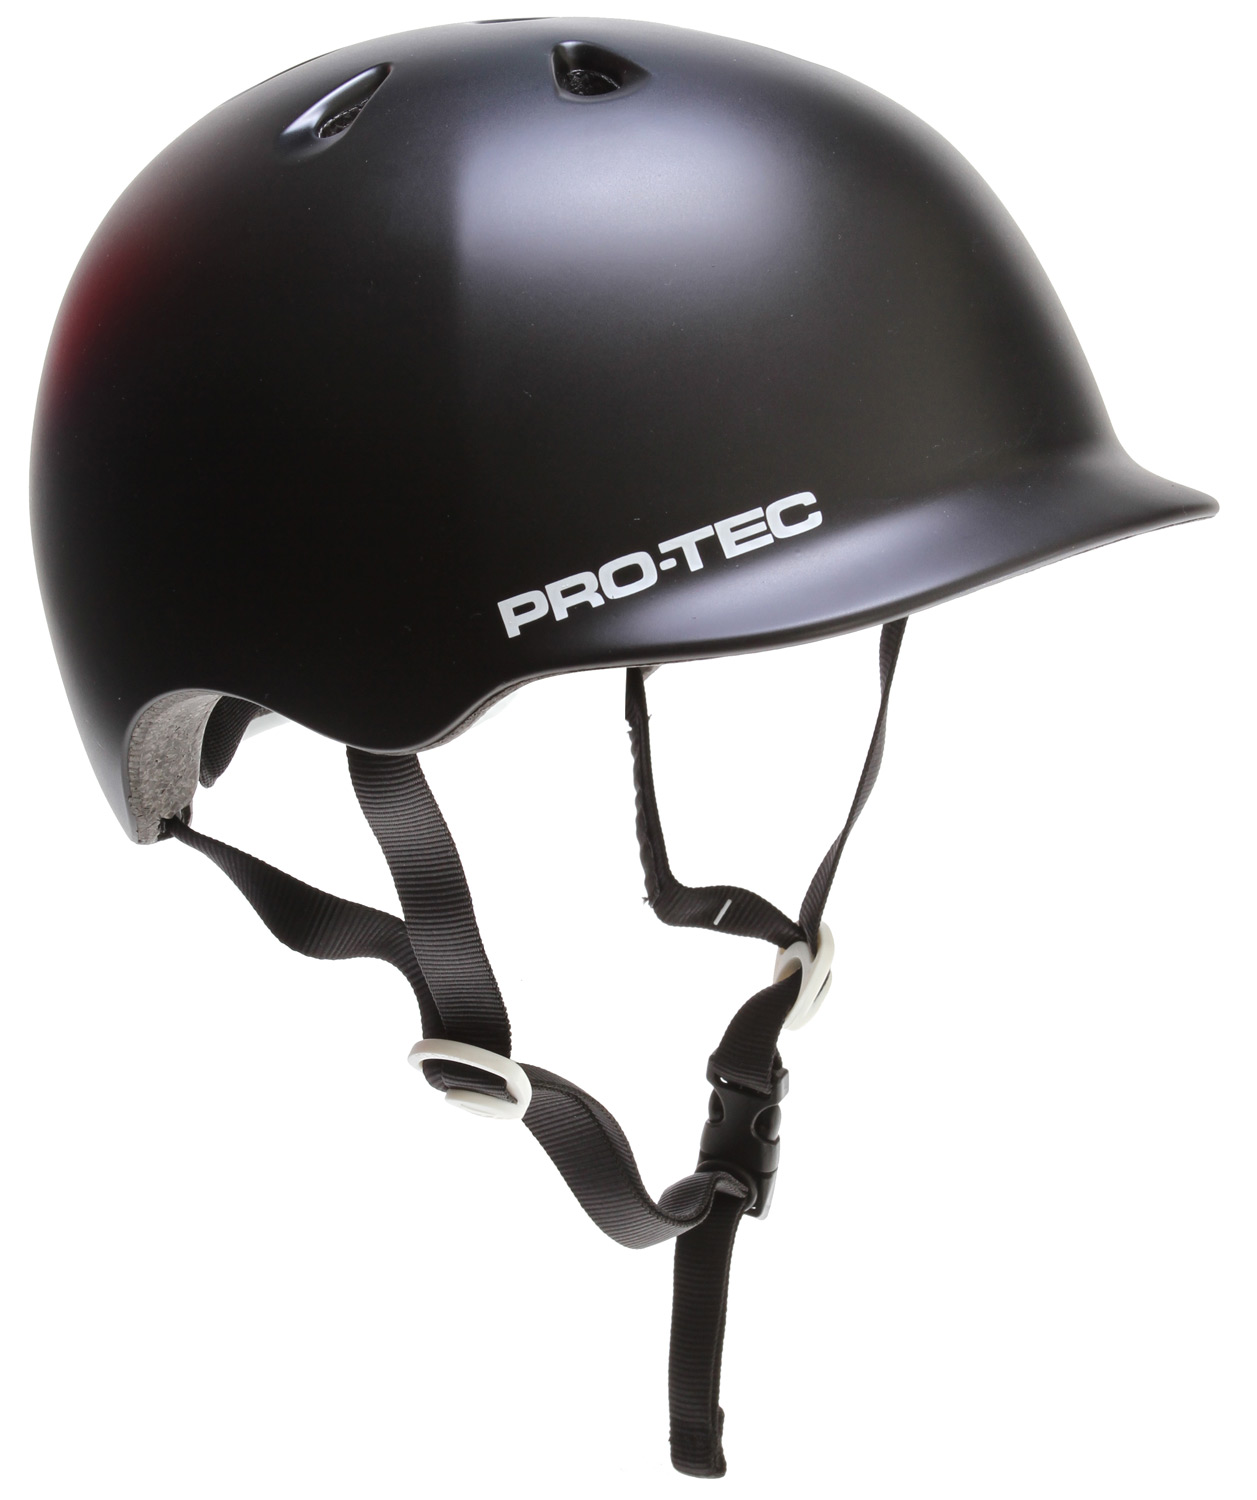 Fitness The Riot Street is the newest addition to the Pro-tec line, bringing you a lightweight, low-profile fit and feel. Built around our Classic skate shape with visor styling, the Riot Street is the perfect choice for the urban commuter.Key Features of the Protec Riot Street Bike Helmet: SHELL: In-mold micro shell LINER: EPS impact liner INTERIOR: Die-cut PU foam padding with laminated Nylex VENTILATION: 7 open vents with internal venting system FIT: 6 sizes / 3 shell breaks CERTIFICATION: CPSC 1203, CE 1078 CLEAR REFLECTIVE STICKERS: Placed on the back of the helmet - $66.95